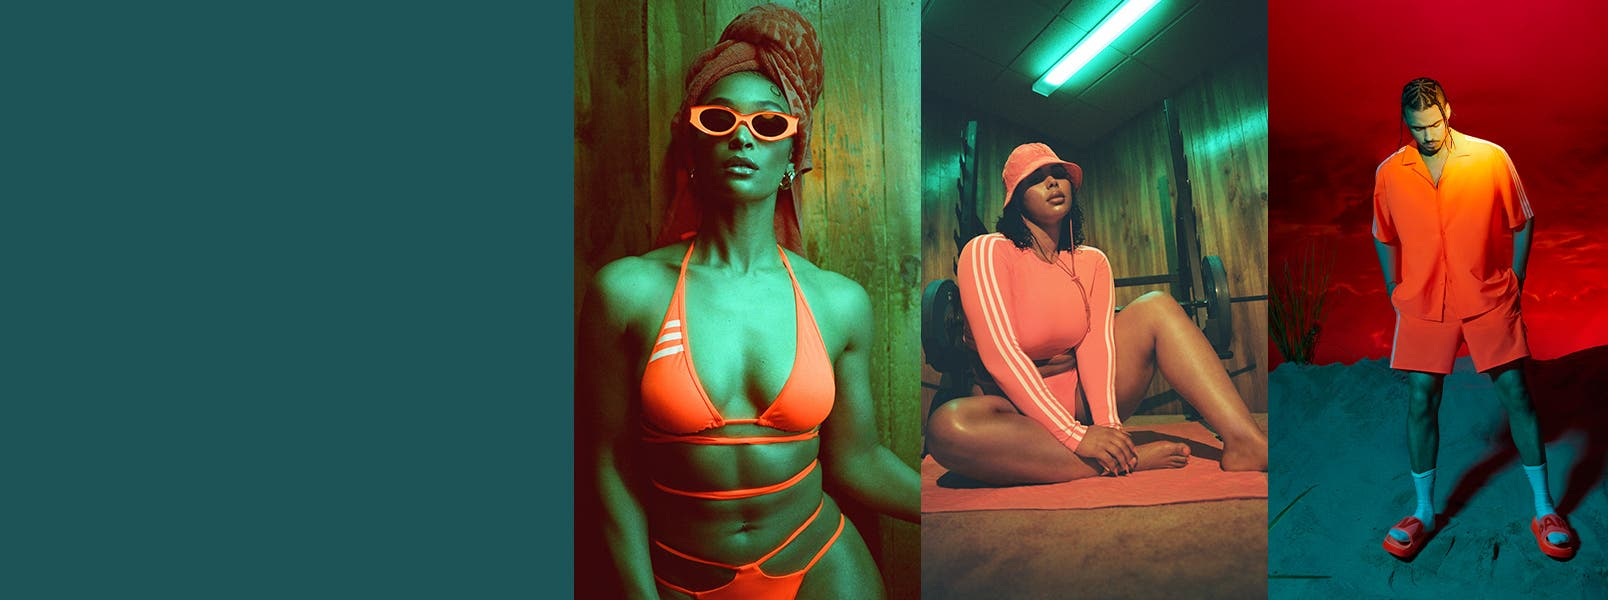 adidas x IVY PARK Swim: a woman in a long-sleeve rashguard with bikini bottoms and bucket hat, woman in a bikini with wrap-tie detail around the waist, man in a swim shirt and shorts with slides, all in solar orange.